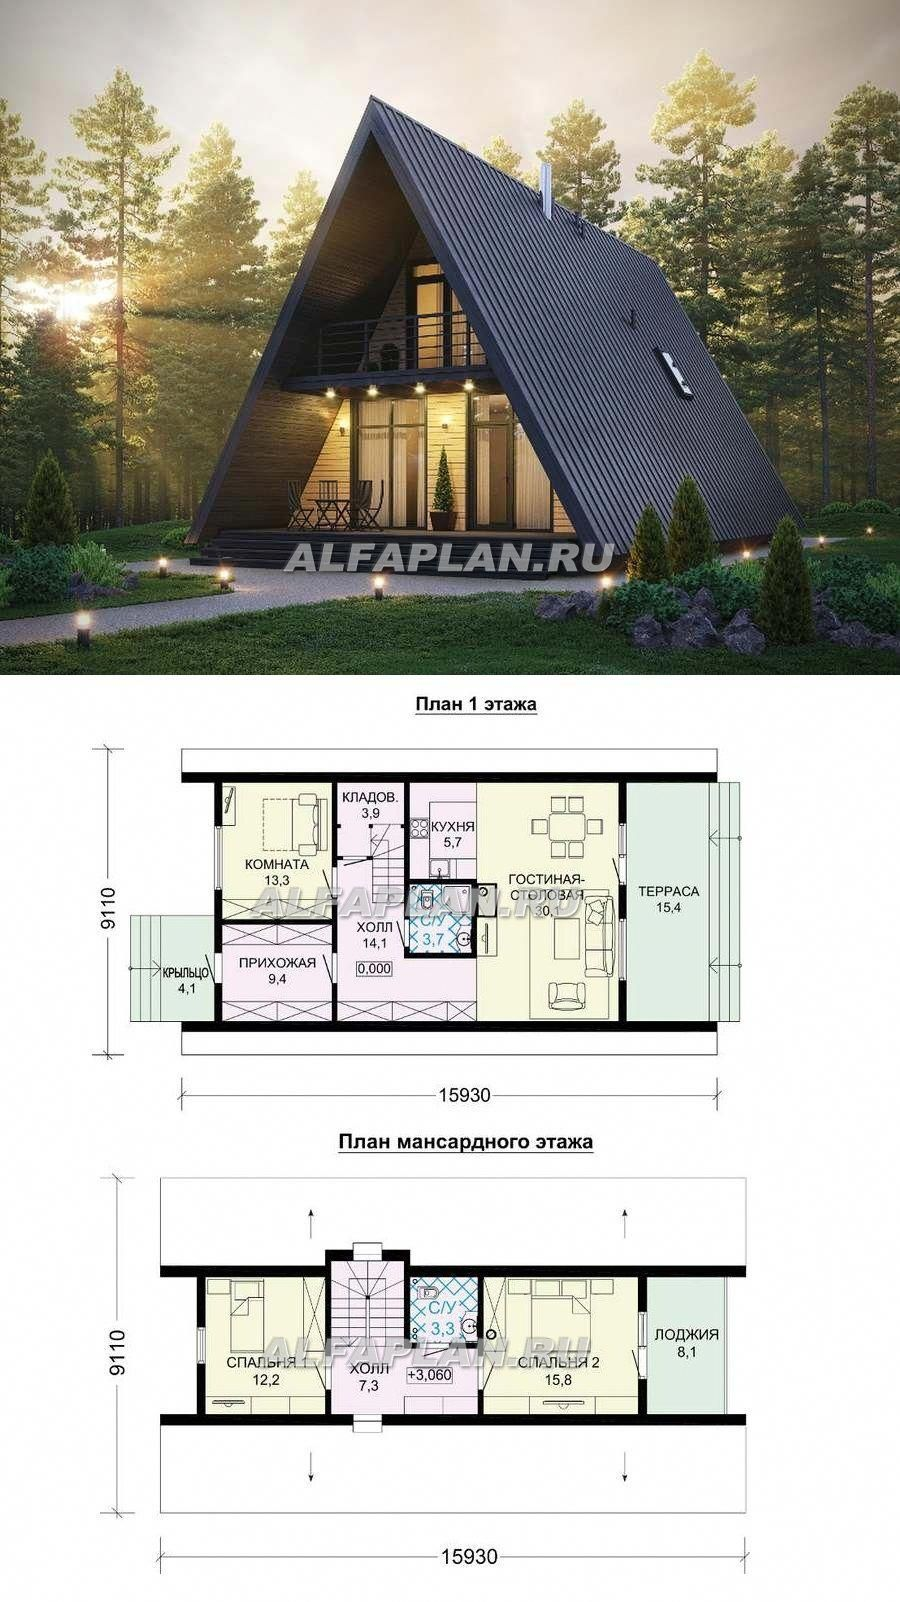 G133 Small Wireframe Architektur G133 Wireframe Architektur G133 Small Wireframe A Frame House A Frame House Plans A Frame Cabin Plans